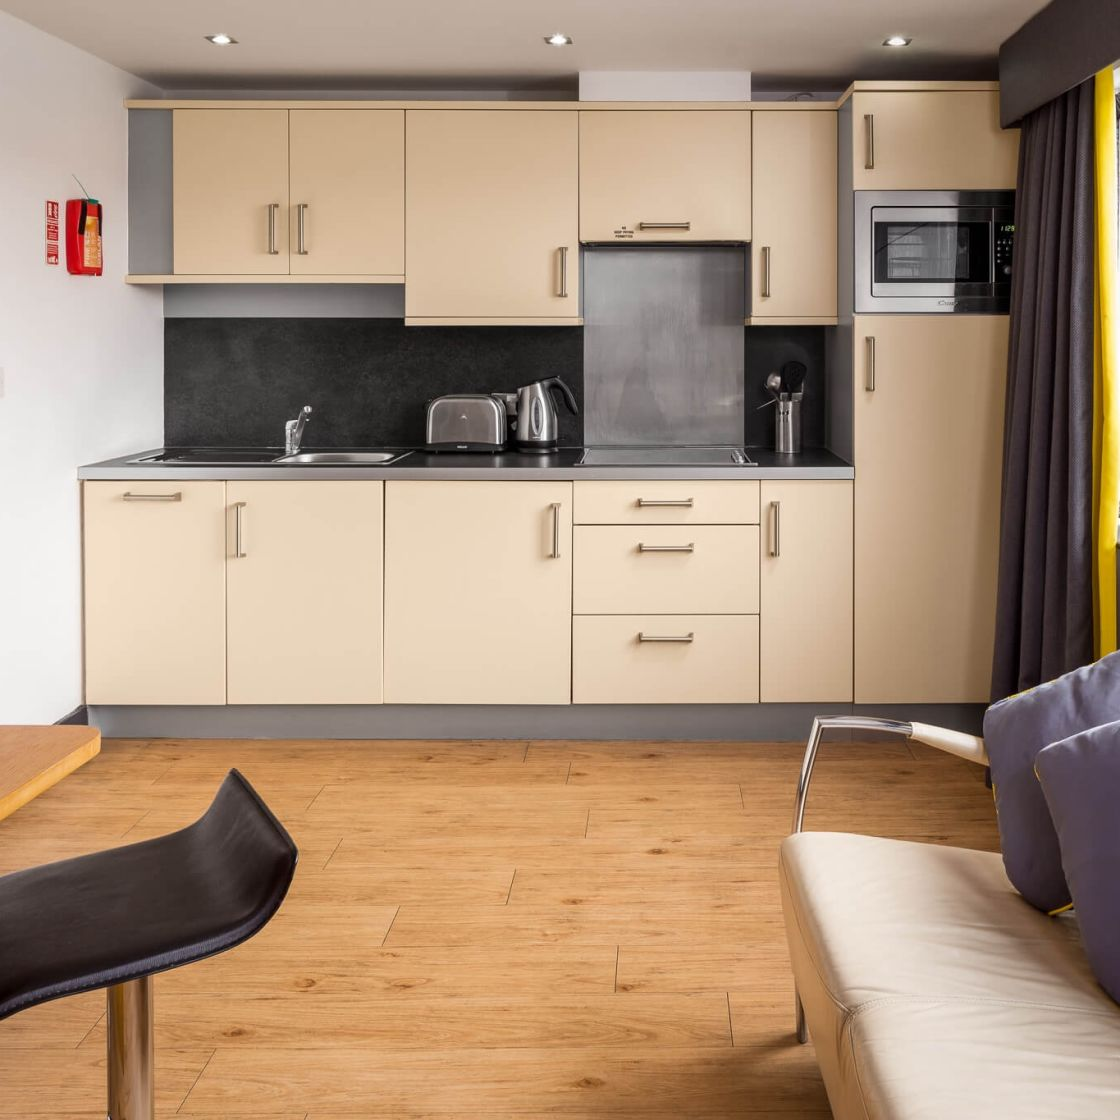 Grande Studio Student Apartment in Leeds. Kitchen and living area. IconInc @ Roomzzz Leeds City West